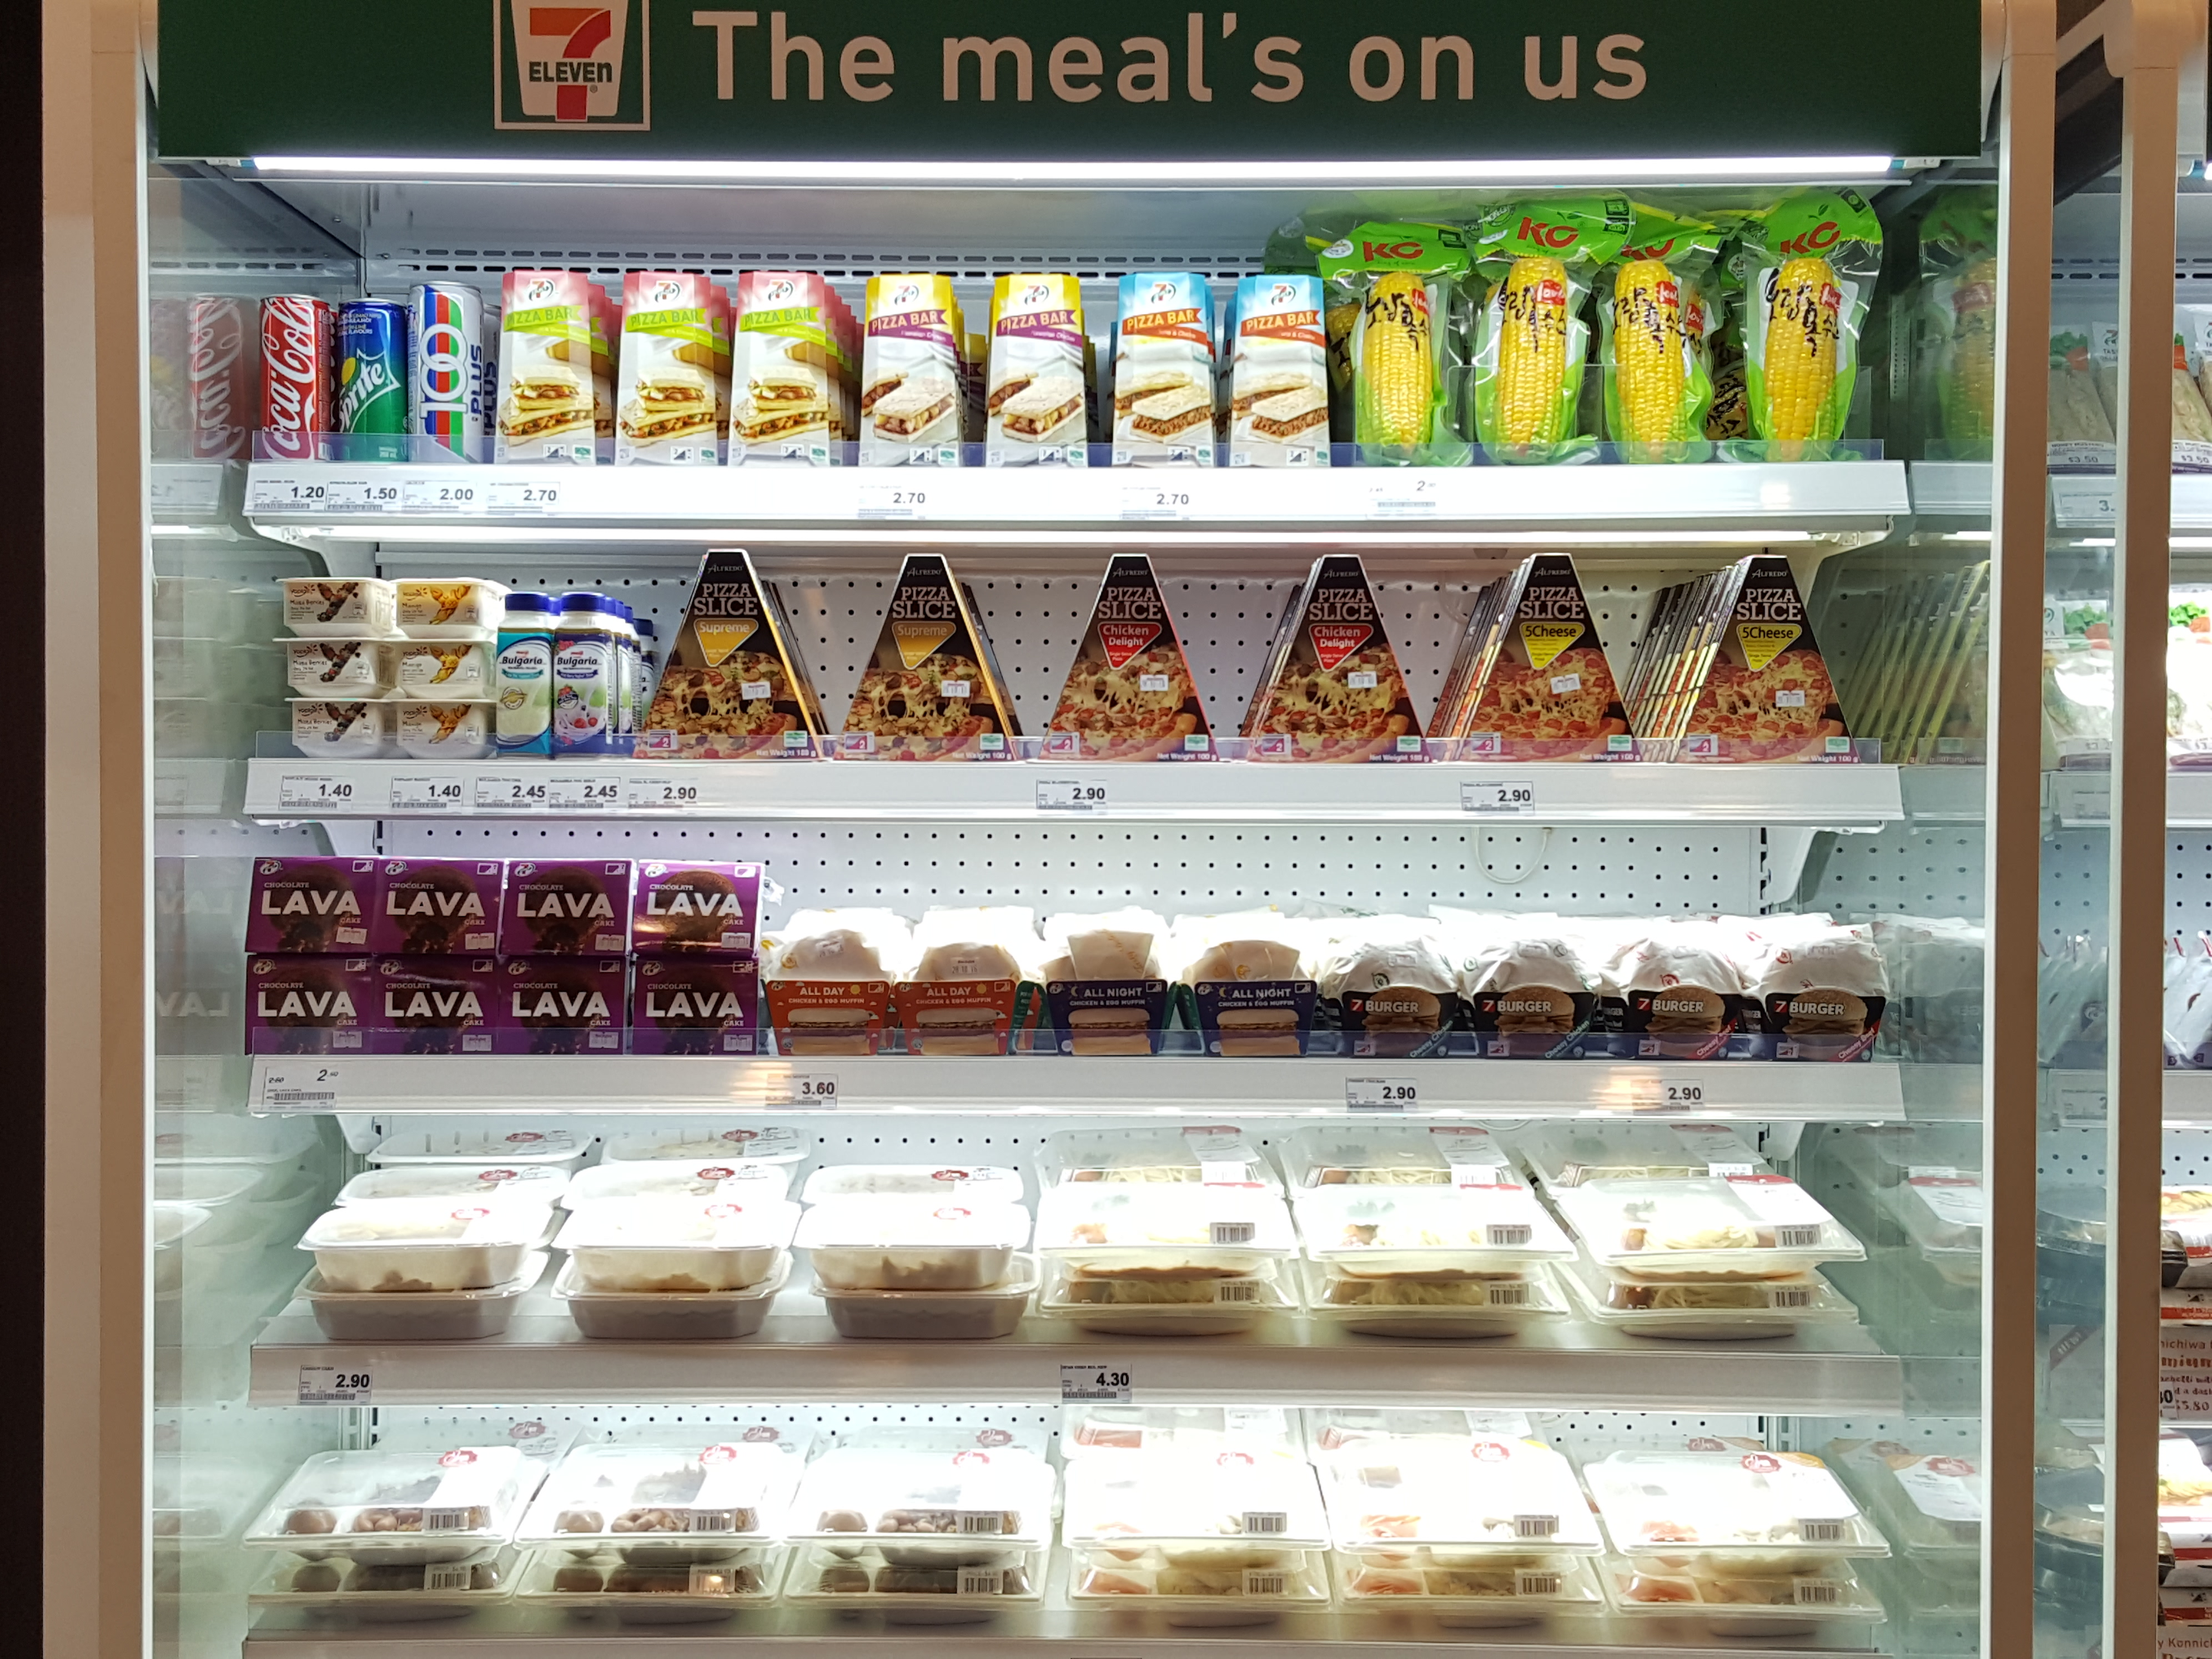 7 Eleven Singapore Fresh Chilled Ready To Eat Meals Nahmj